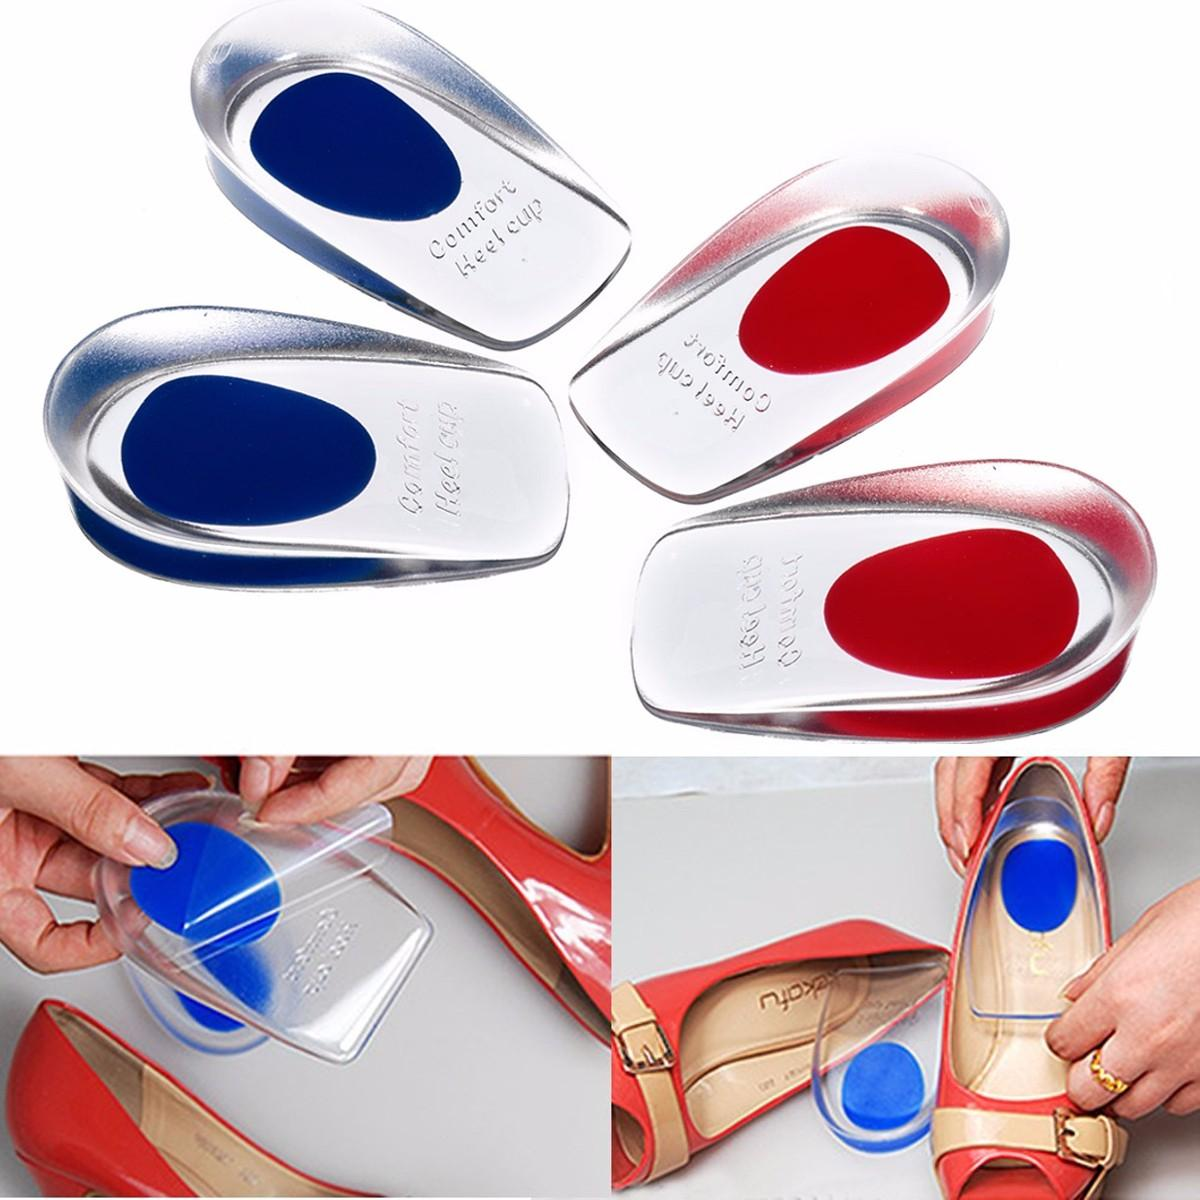 1 Pair Silicone Gel Shoes Inserts Insoles Men Women U-Shape Heel Protective Pain Relief Cushion Heel Cup Massage Pads